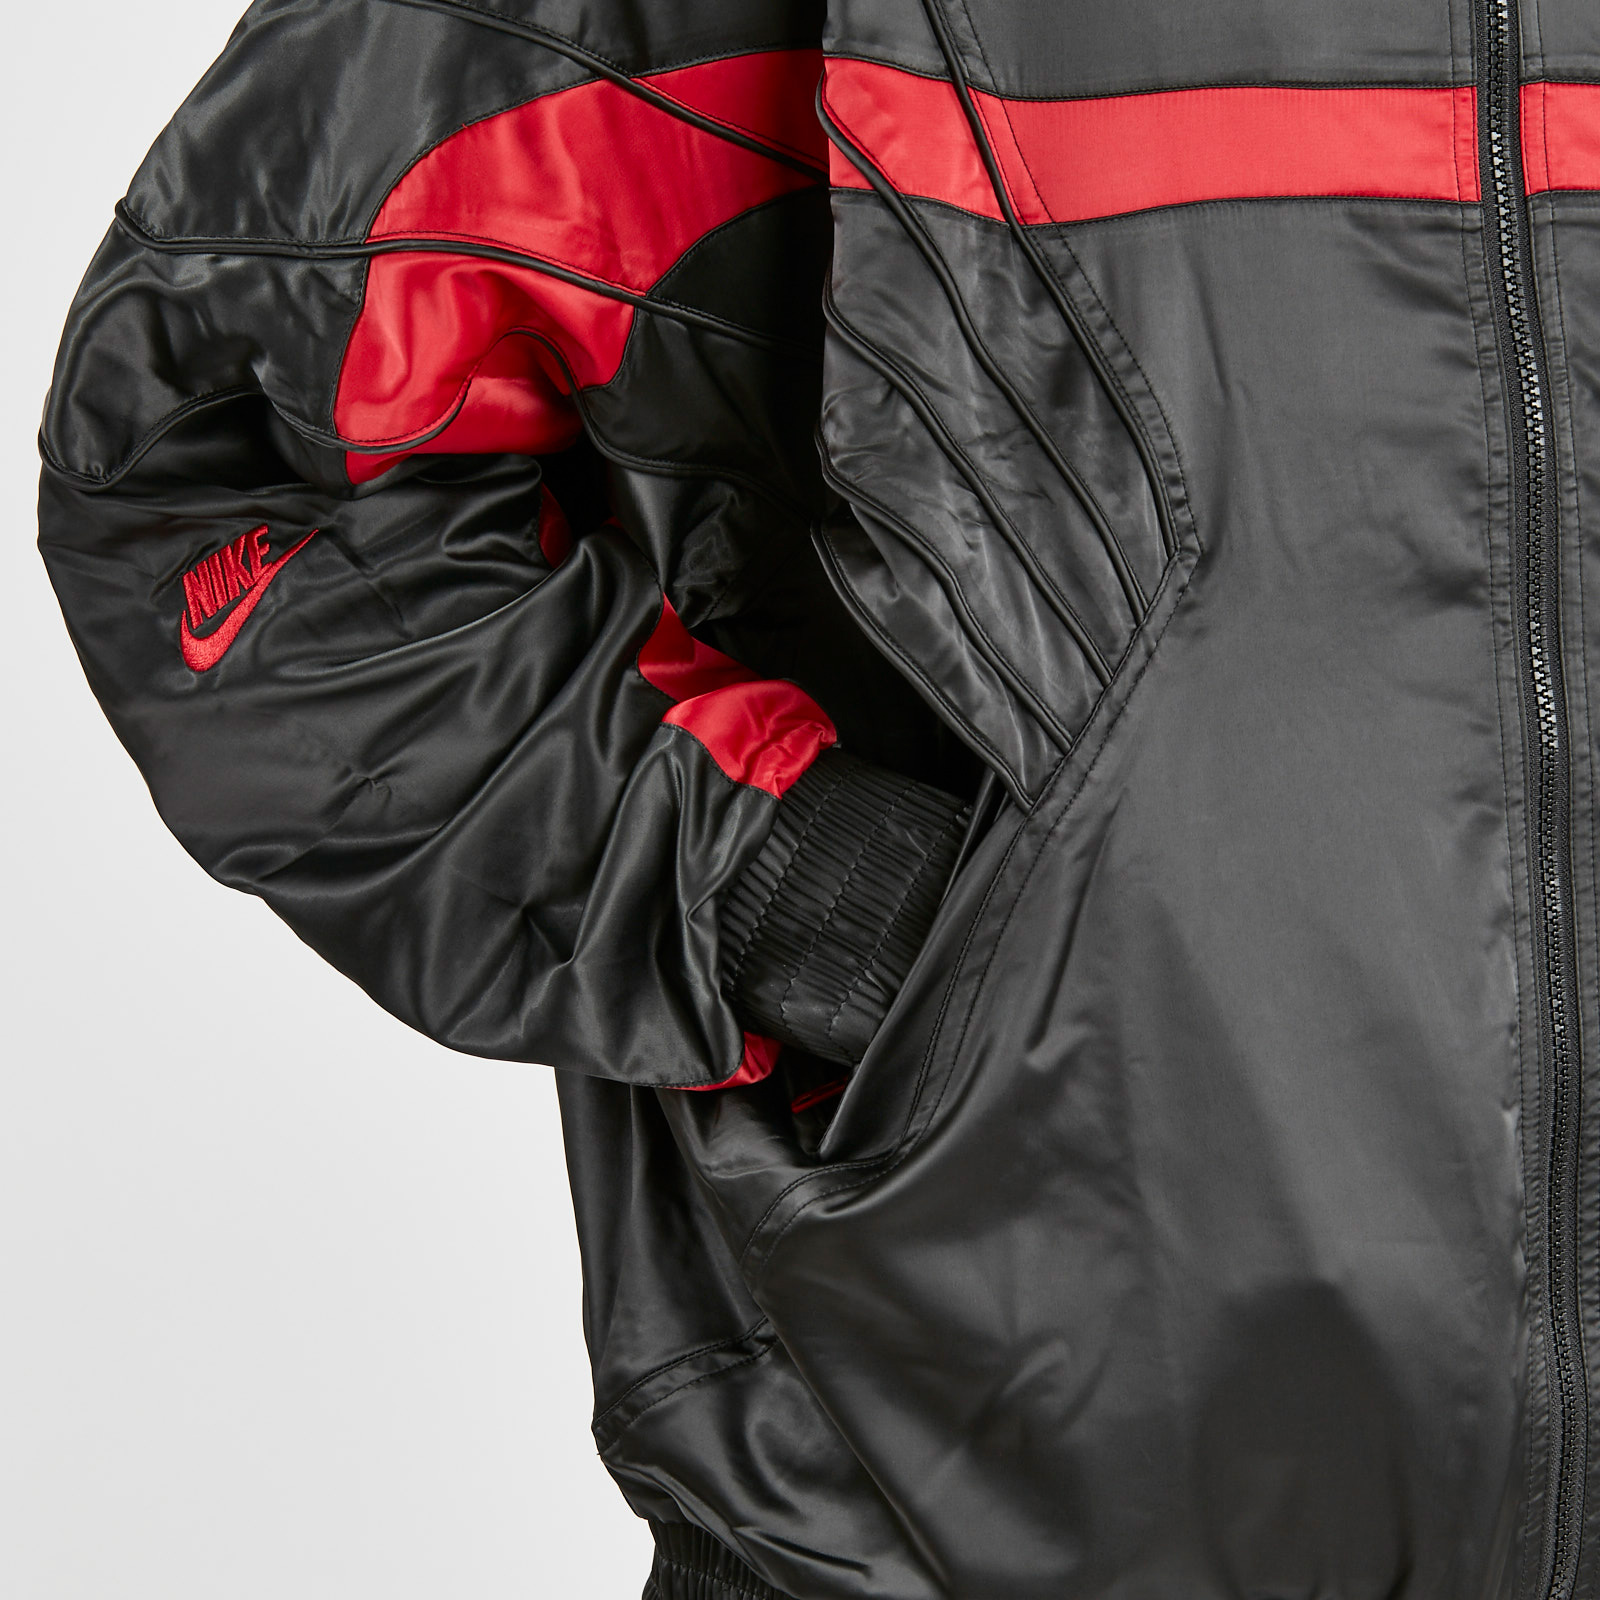 super cheap compares to official site select for newest Jordan Brand AJ5 Satin Jacket - Ar3130-010 - Sneakersnstuff ...